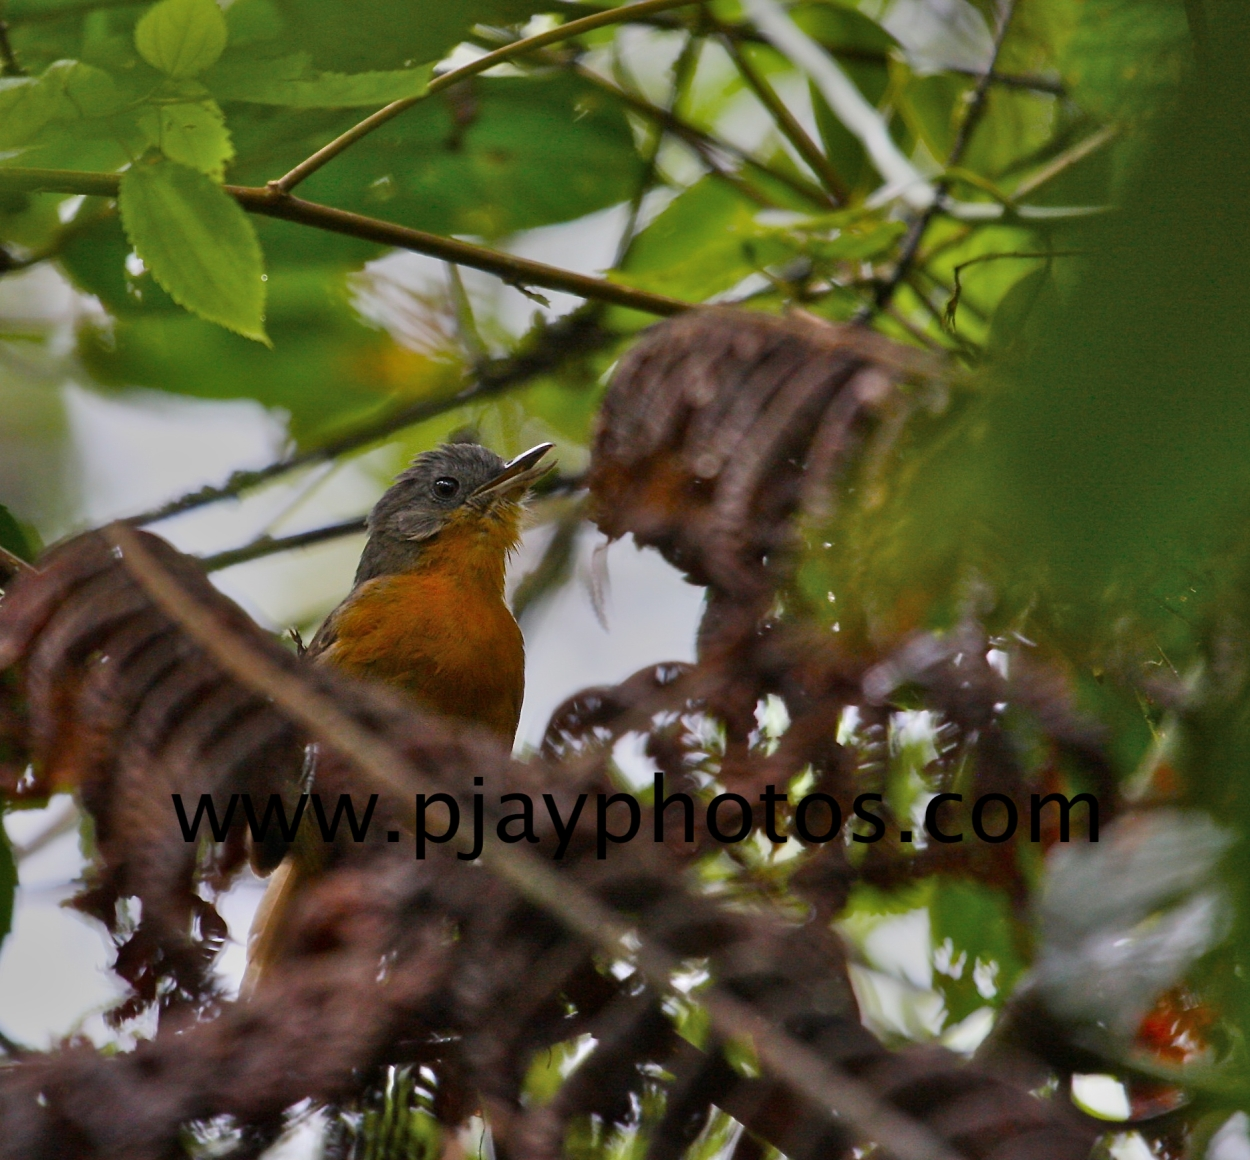 parker's antbird, antbird, bird, colombia, nature, wildlife, photograph